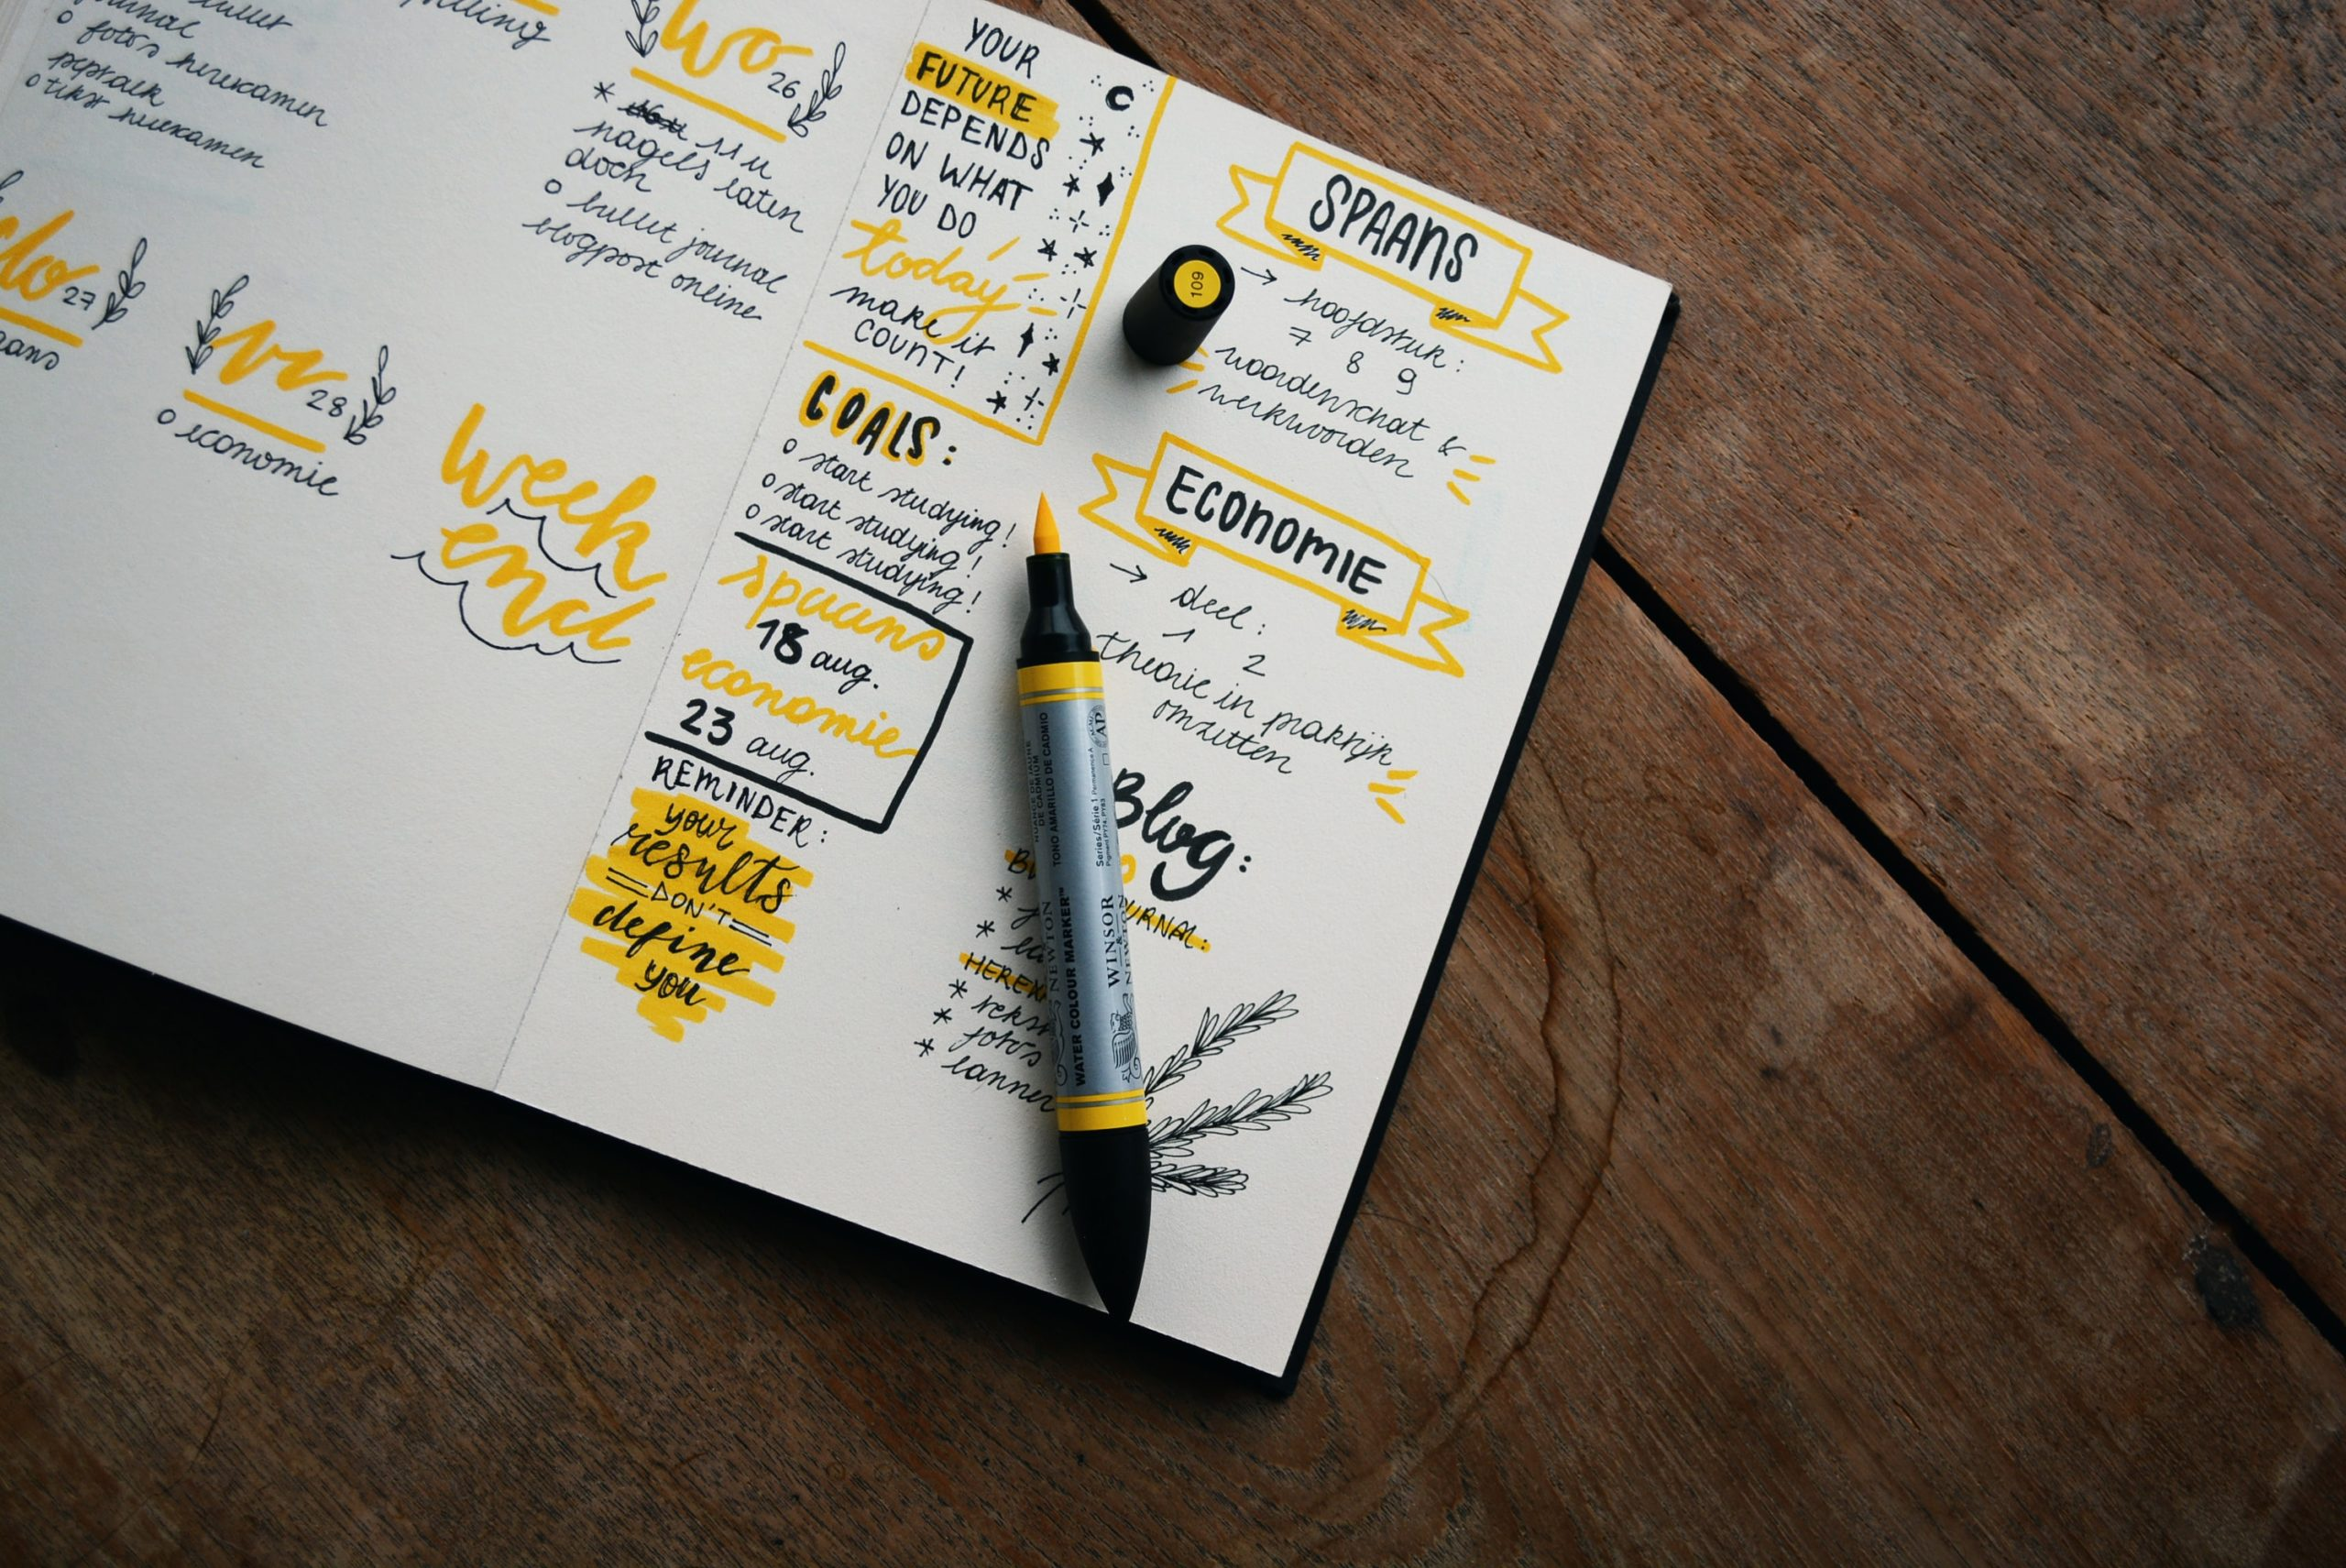 How To: Social Media Content Planning